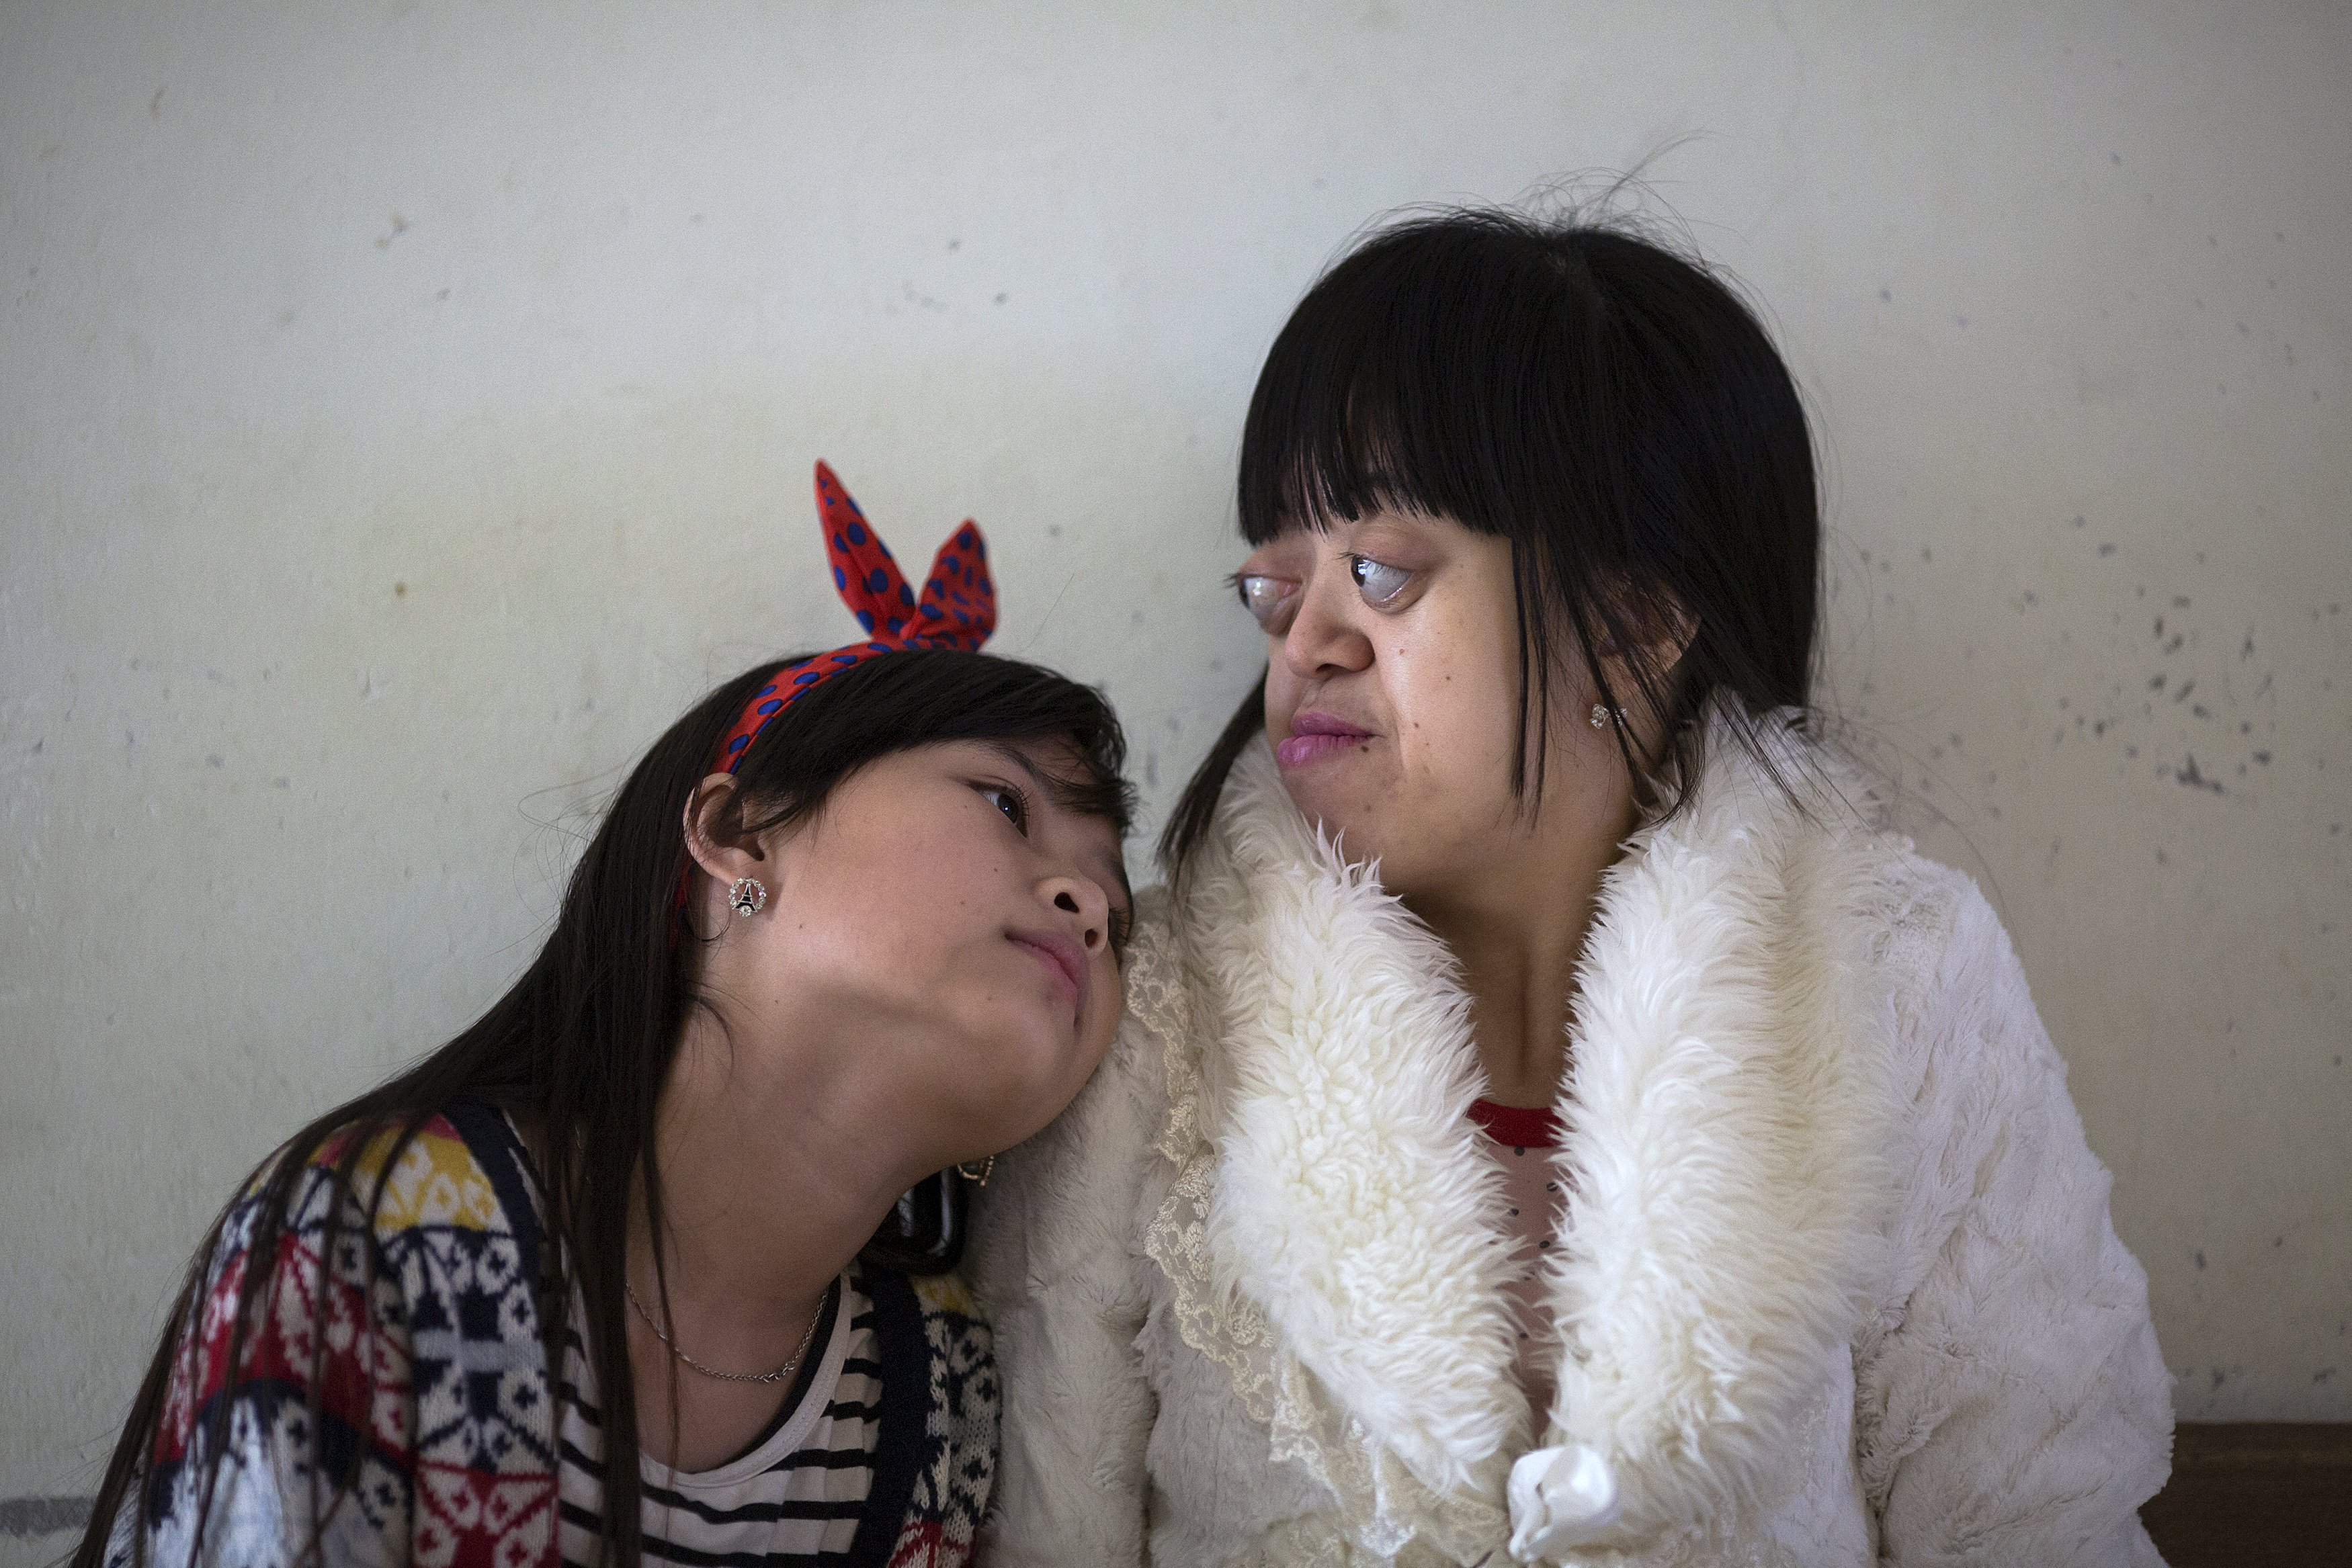 Nguyen Thi Van Long (R) and her best friend Dinh Thi Huong, who is deaf and mute, spend time together at Friendship village, a hospice for Agent Orange victims outside Hanoi April 8, 2015. The fathers of both girls were soldiers who were exposed to the Agent Orange during the Vietnam war and health officials link the girls' health conditions to the defoliant. Some 120 children and 60 Vietnamese veterans stay at Friendship village, which was established in 1998.